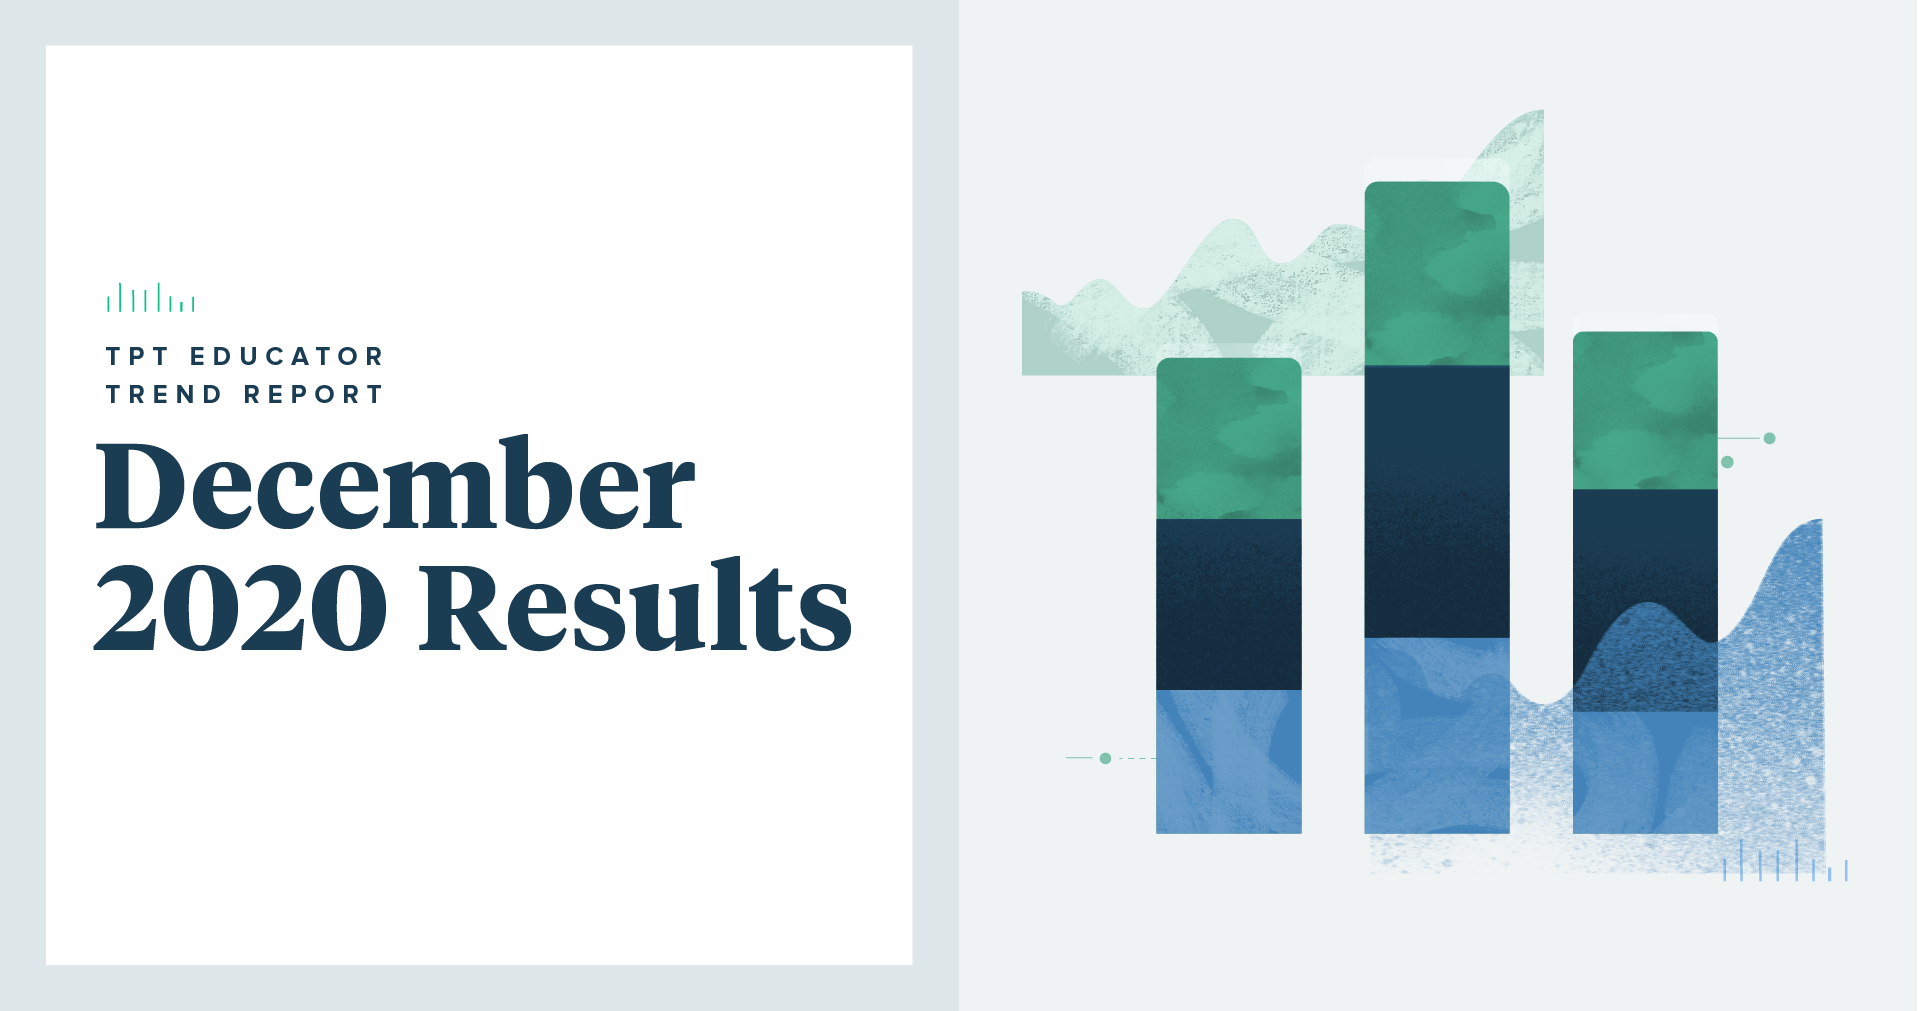 TpT Educator Trend Report: December 2020 Results